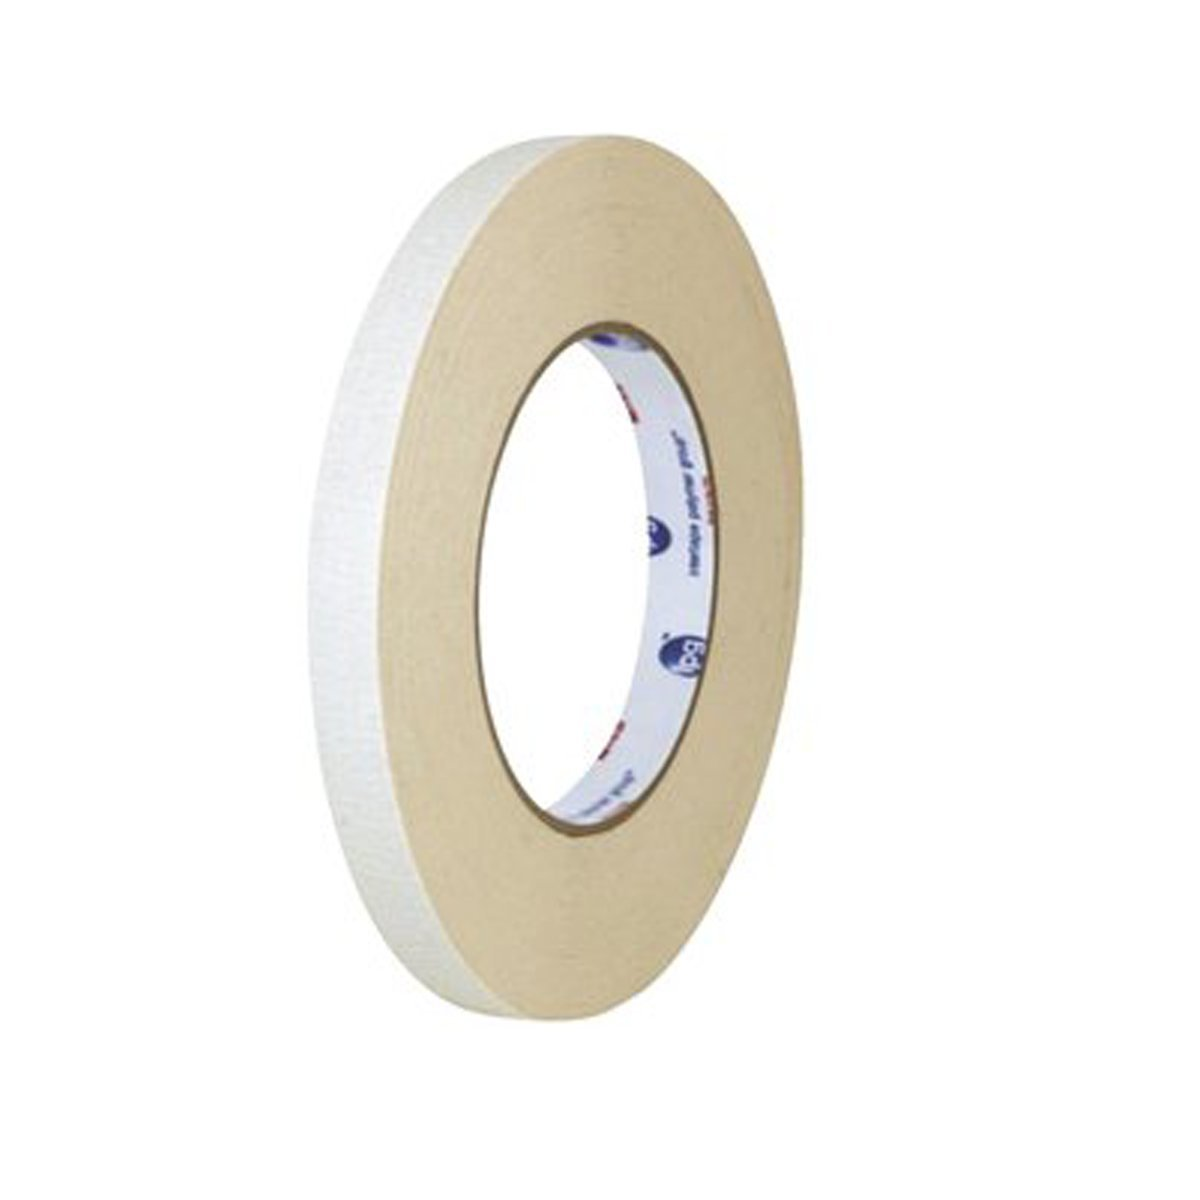 "Double Coated Flatback Paper Tape 7.0 mil - Rubber Adhesive (52307) (3/4"" (18mm))"